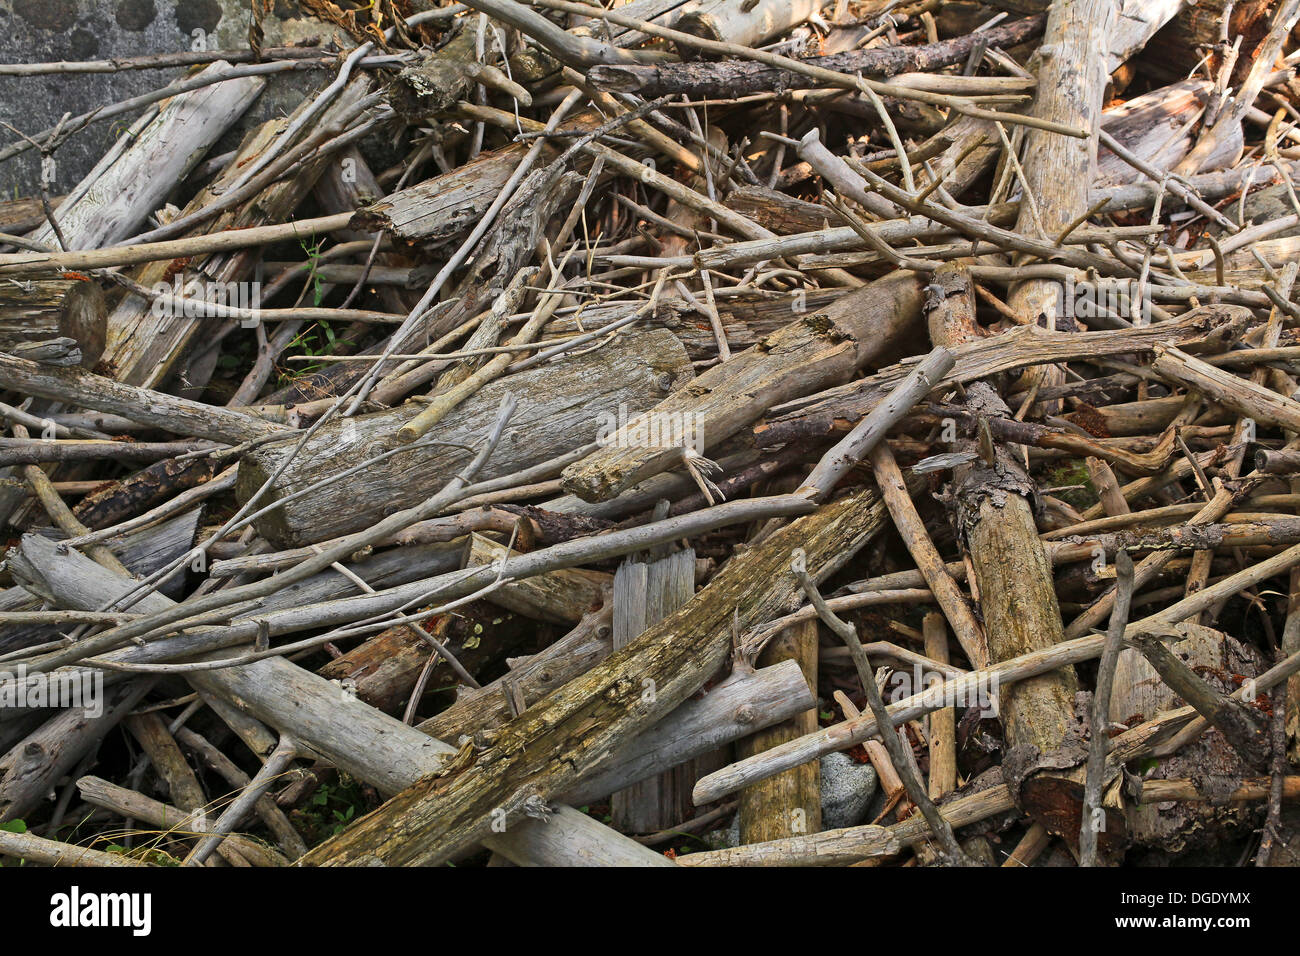 mess of the driftwood on the bank - Stock Image